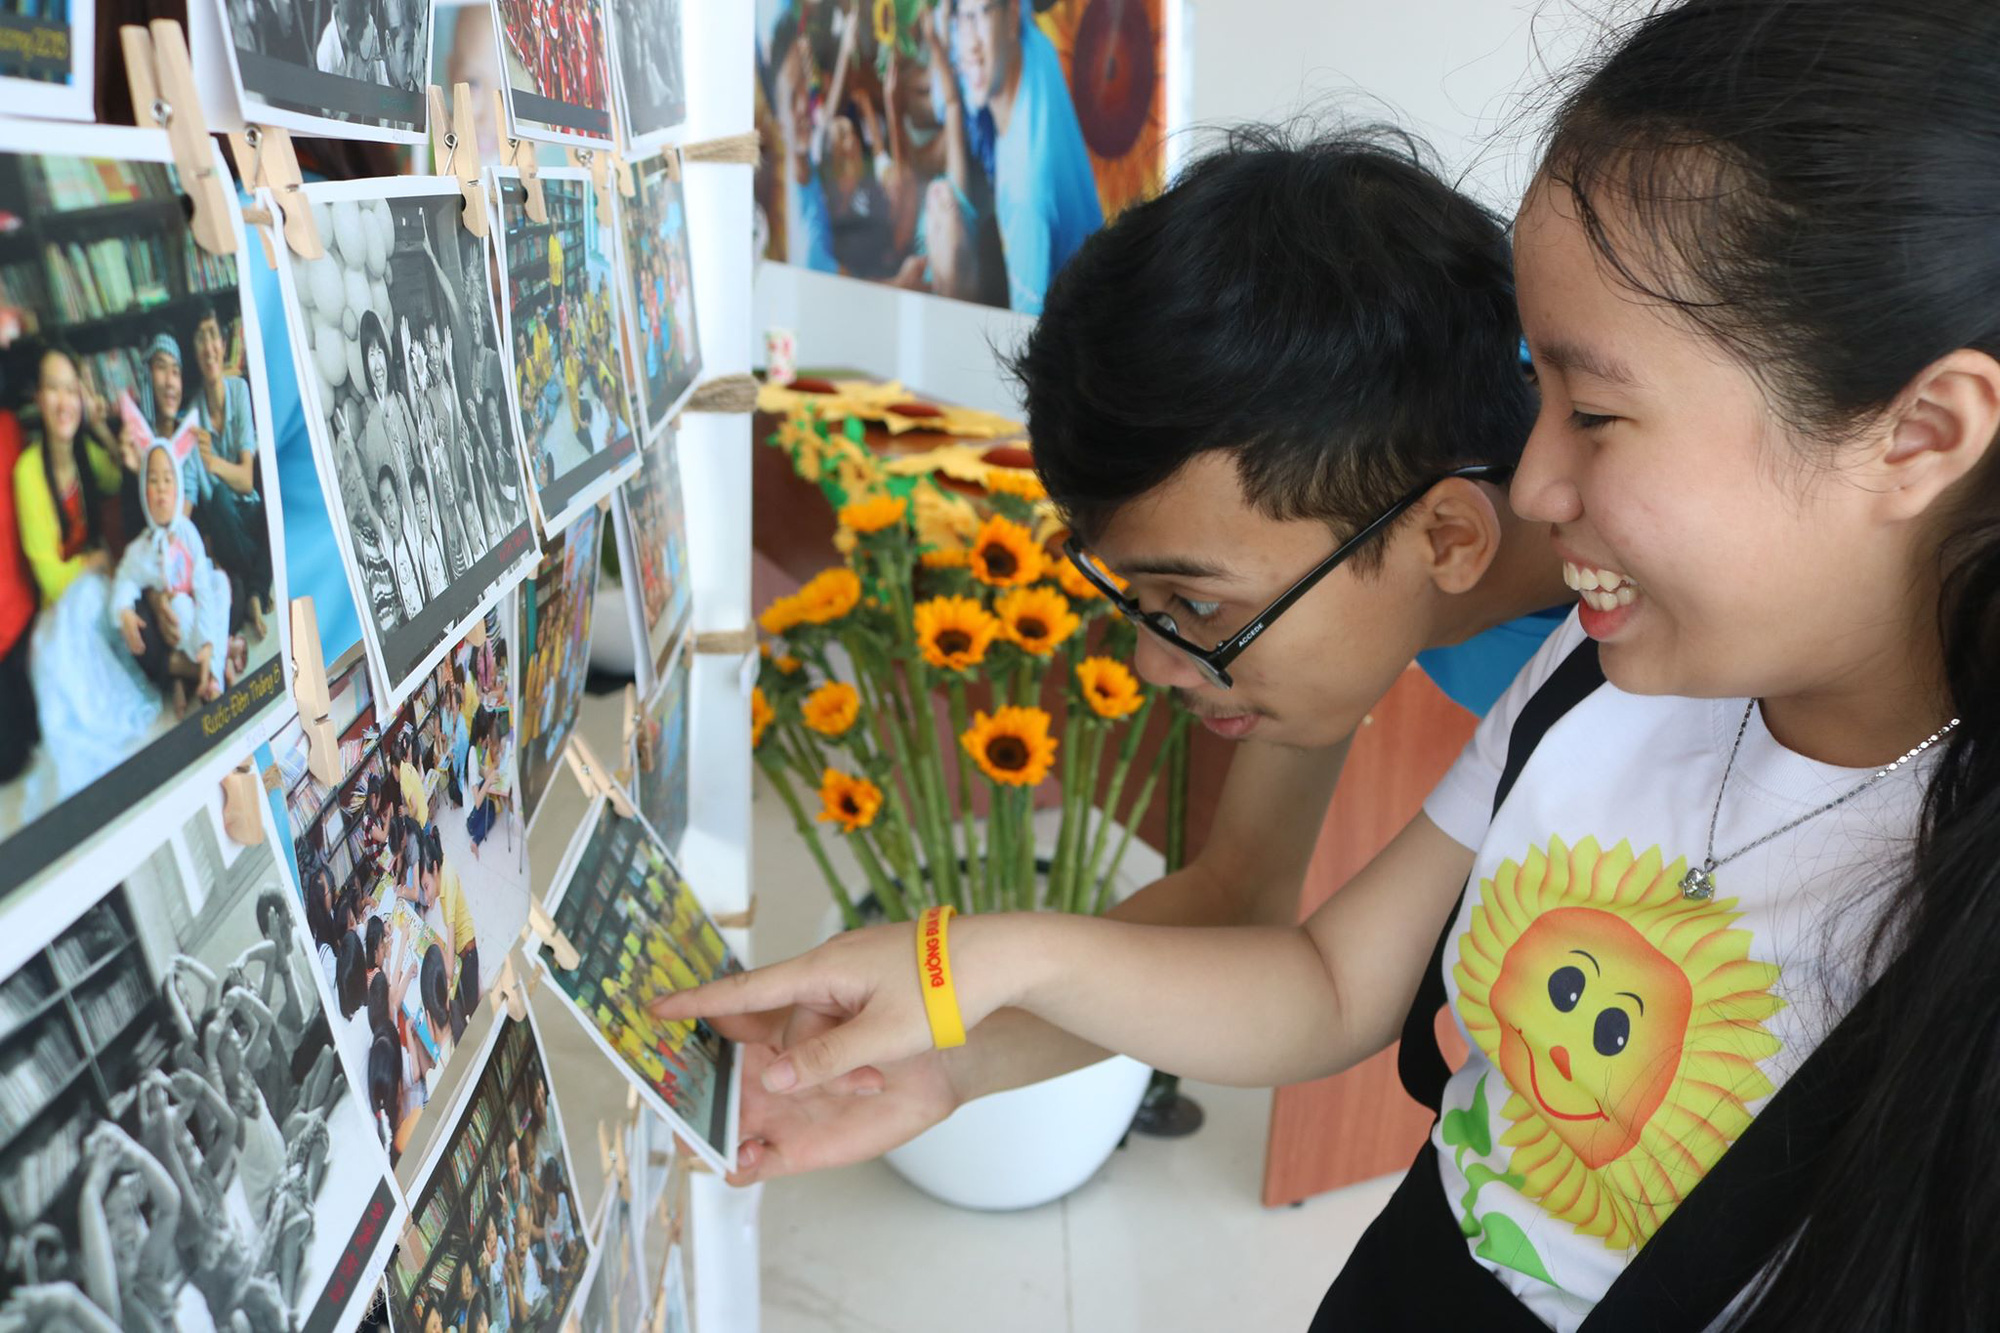 Photographs capturing children journeys of fighting cancer are presented at the event. Photo: Duy Khanh / Tuoi Tre